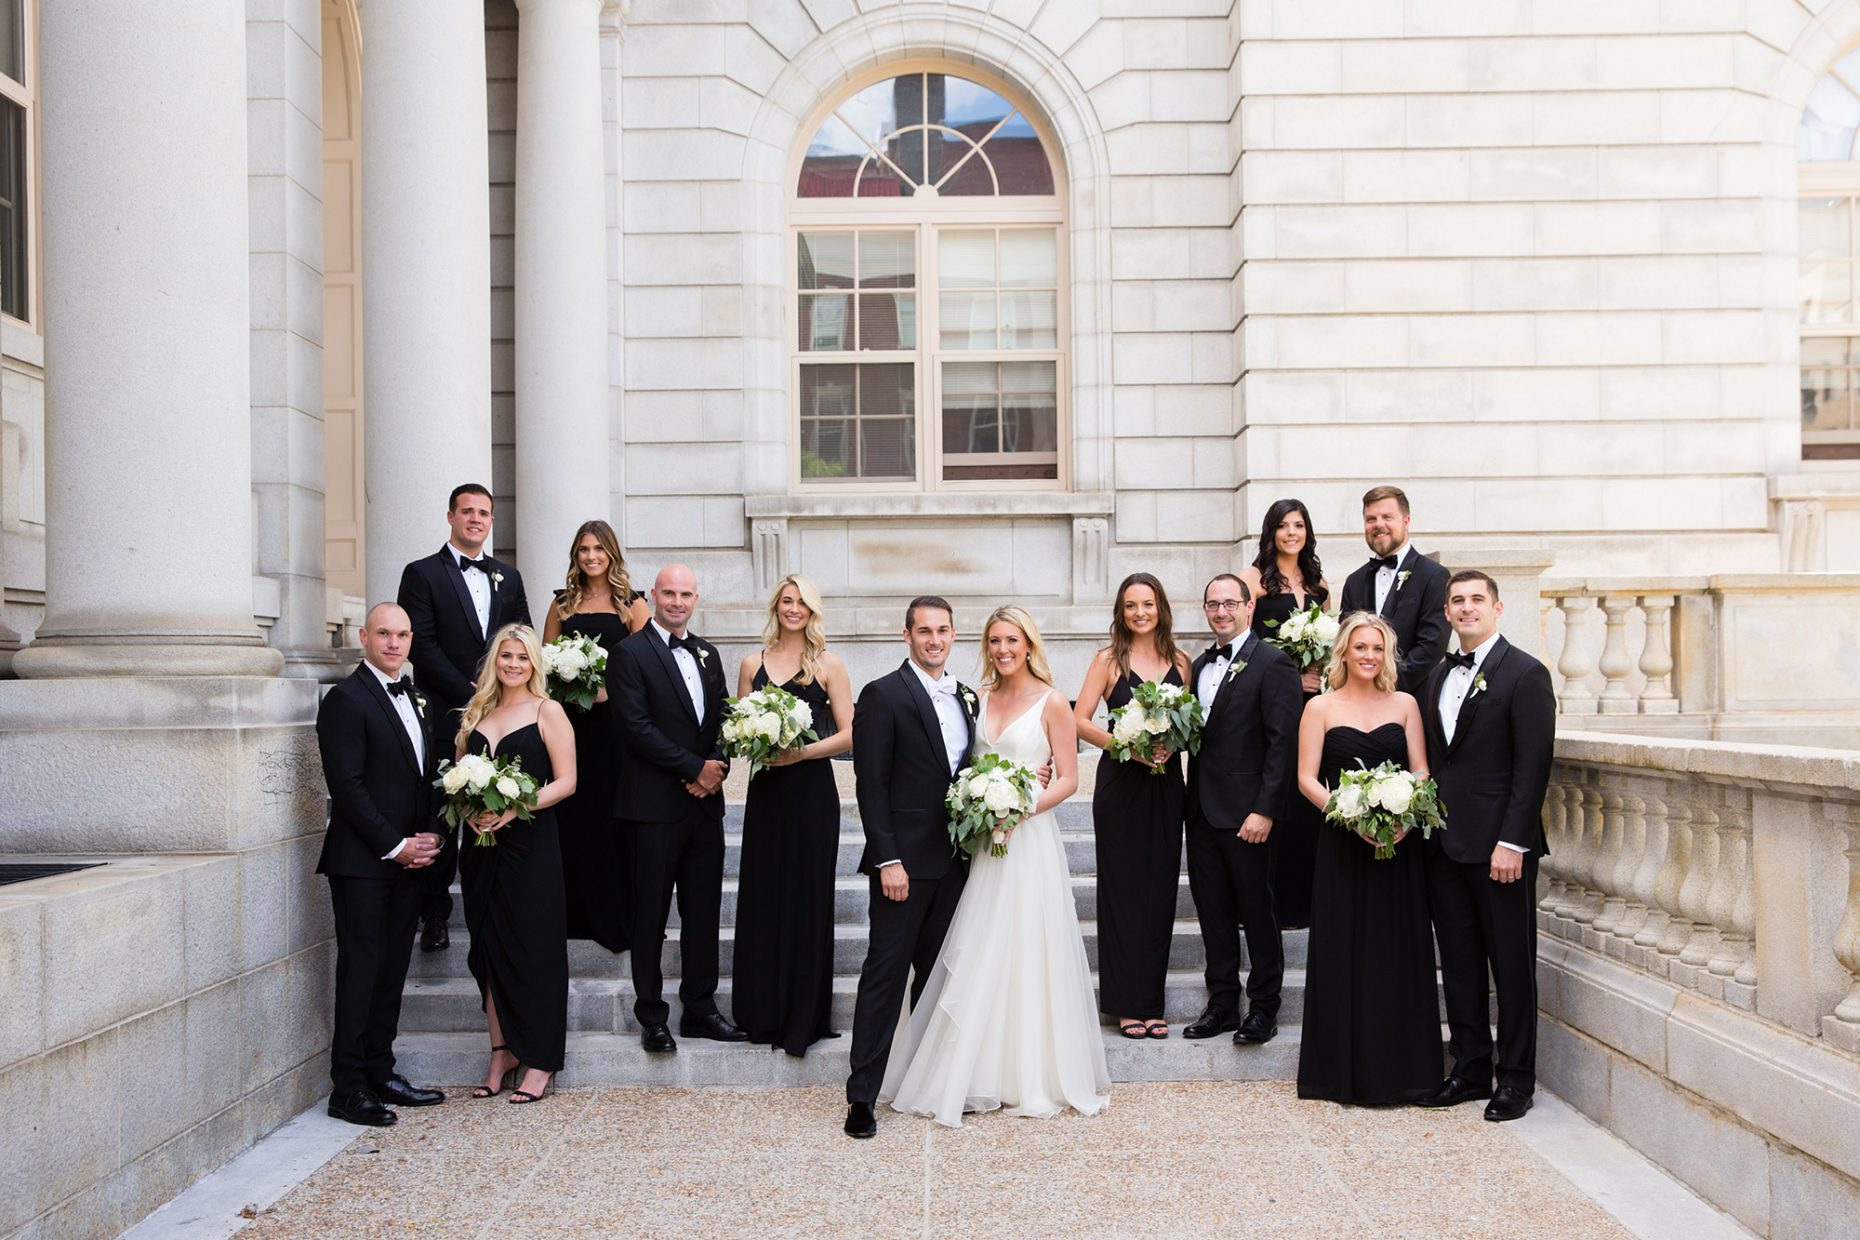 classic wedding party portrait in portland maine